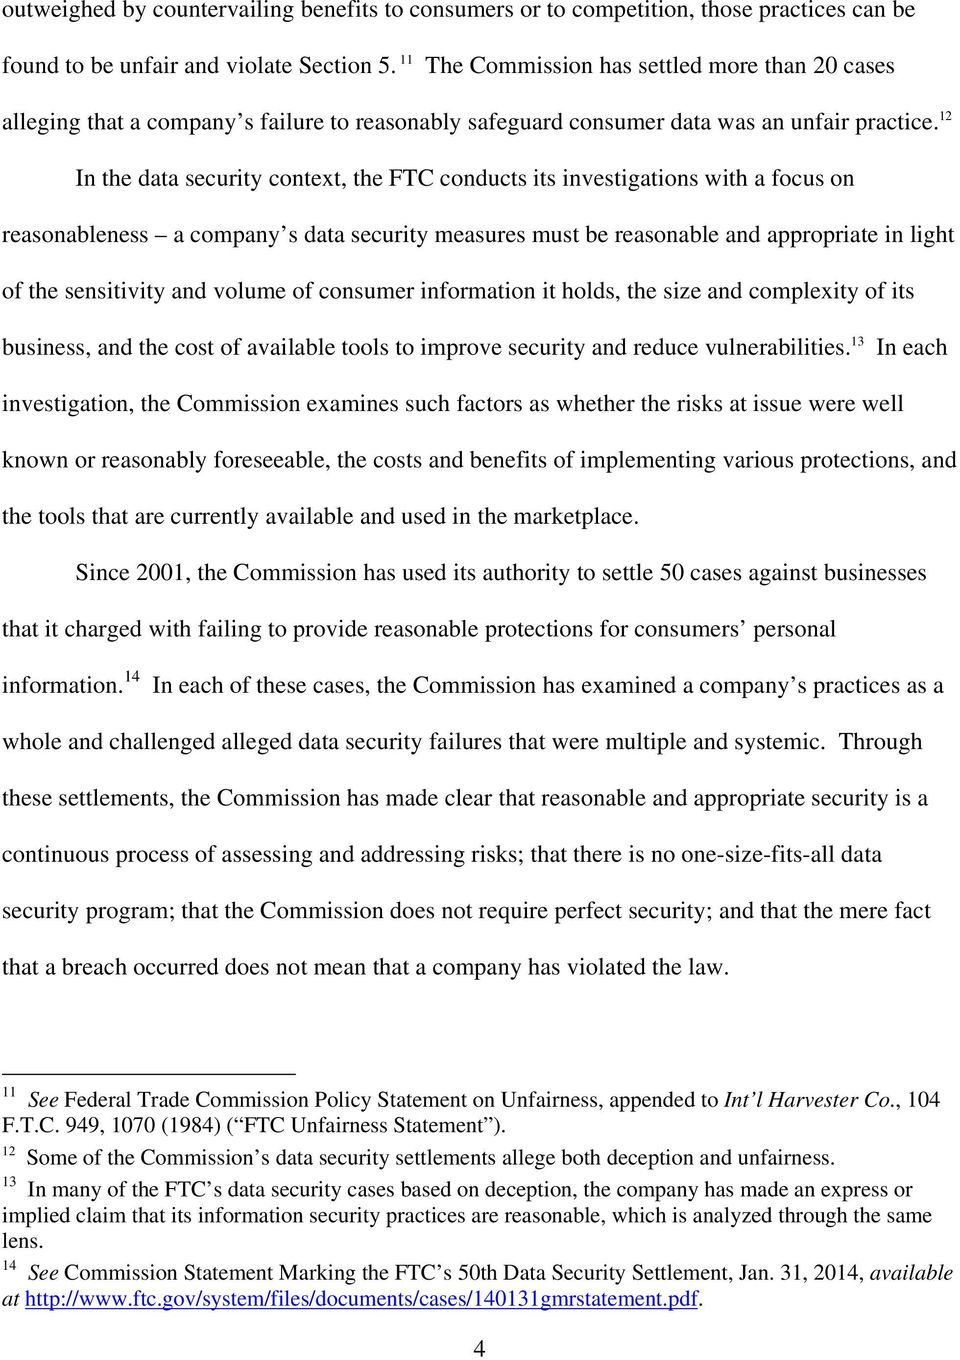 12 In the data security context, the FTC conducts its investigations with a focus on reasonableness a company s data security measures must be reasonable and appropriate in light of the sensitivity